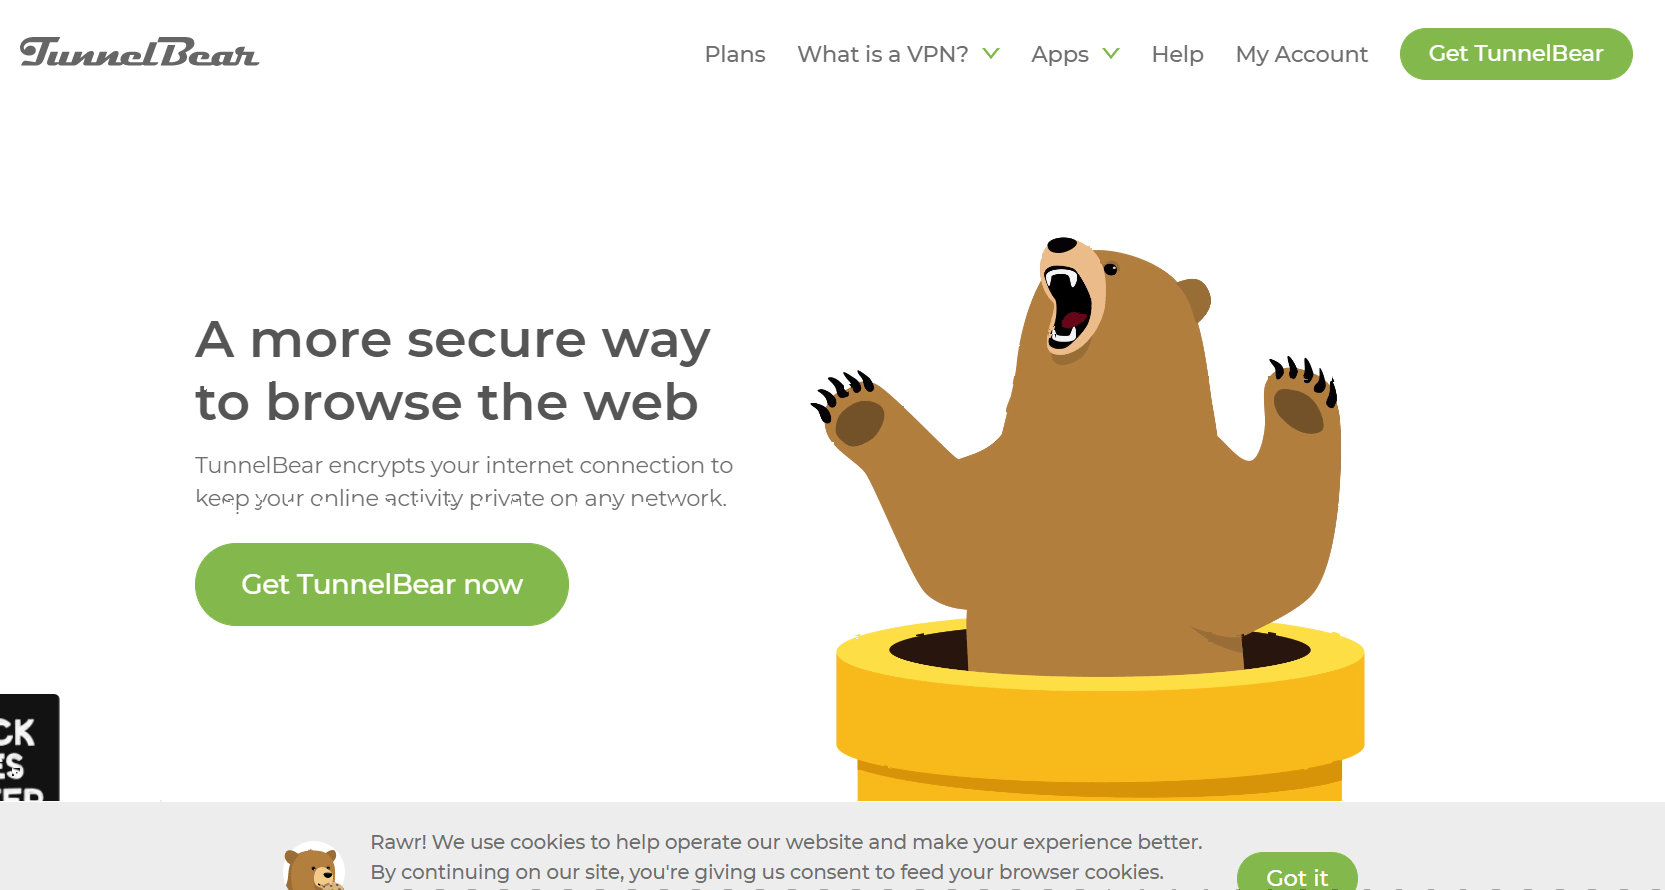 TunnelBear Review- Overview